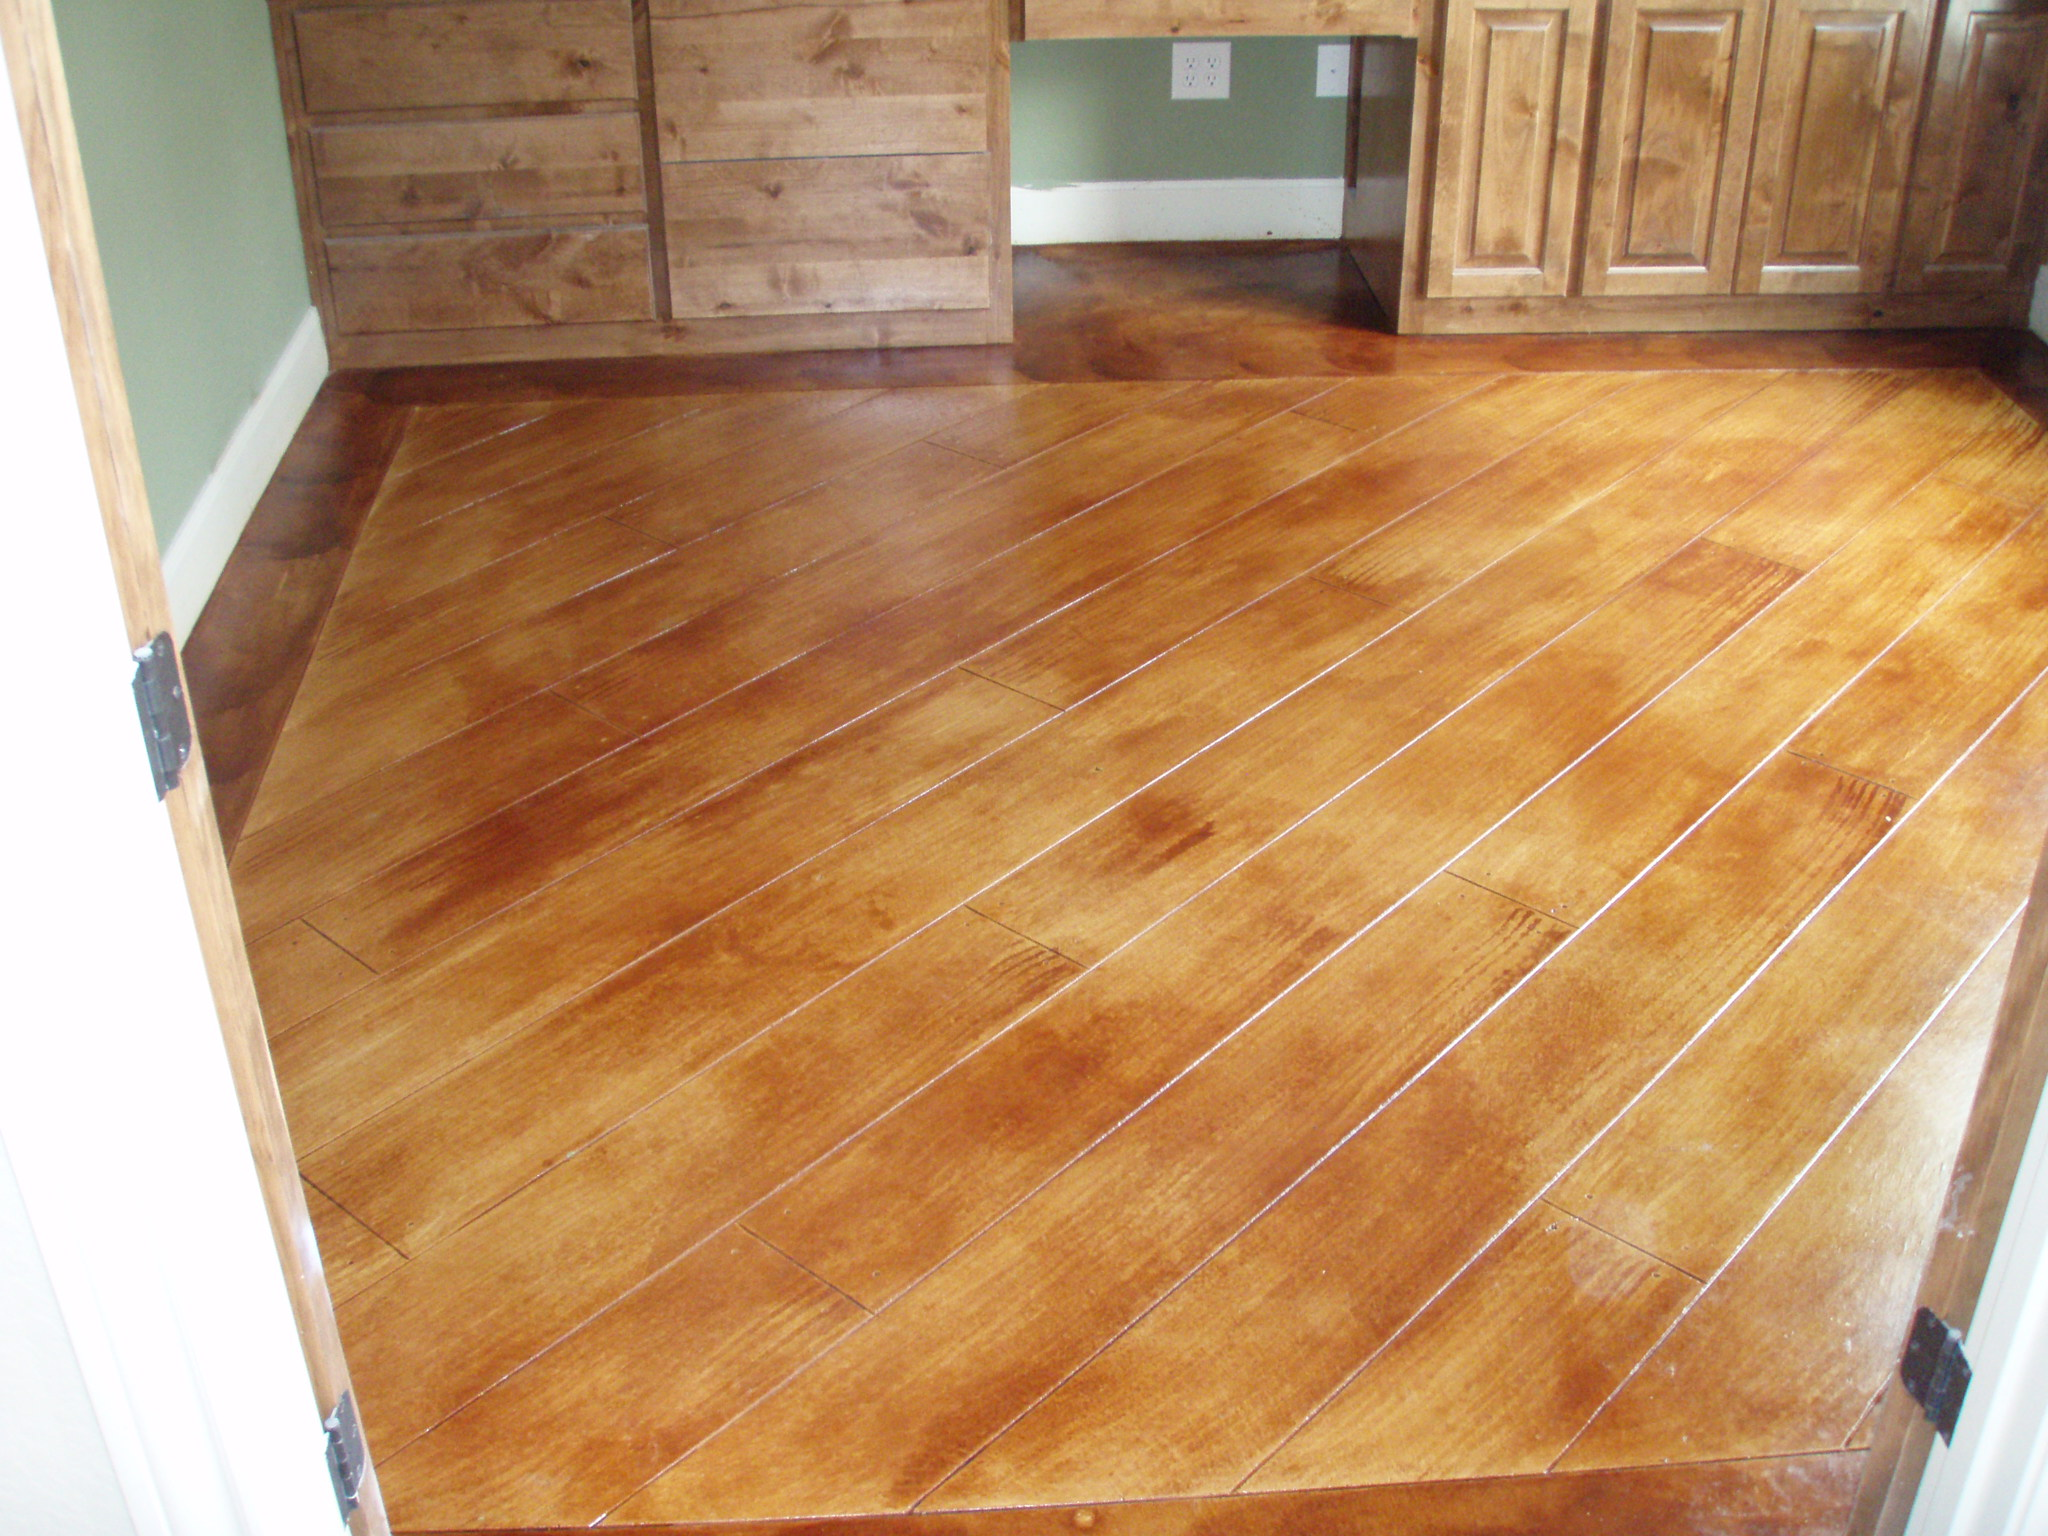 Scored Concrete Flooring : Stained concrete and scored